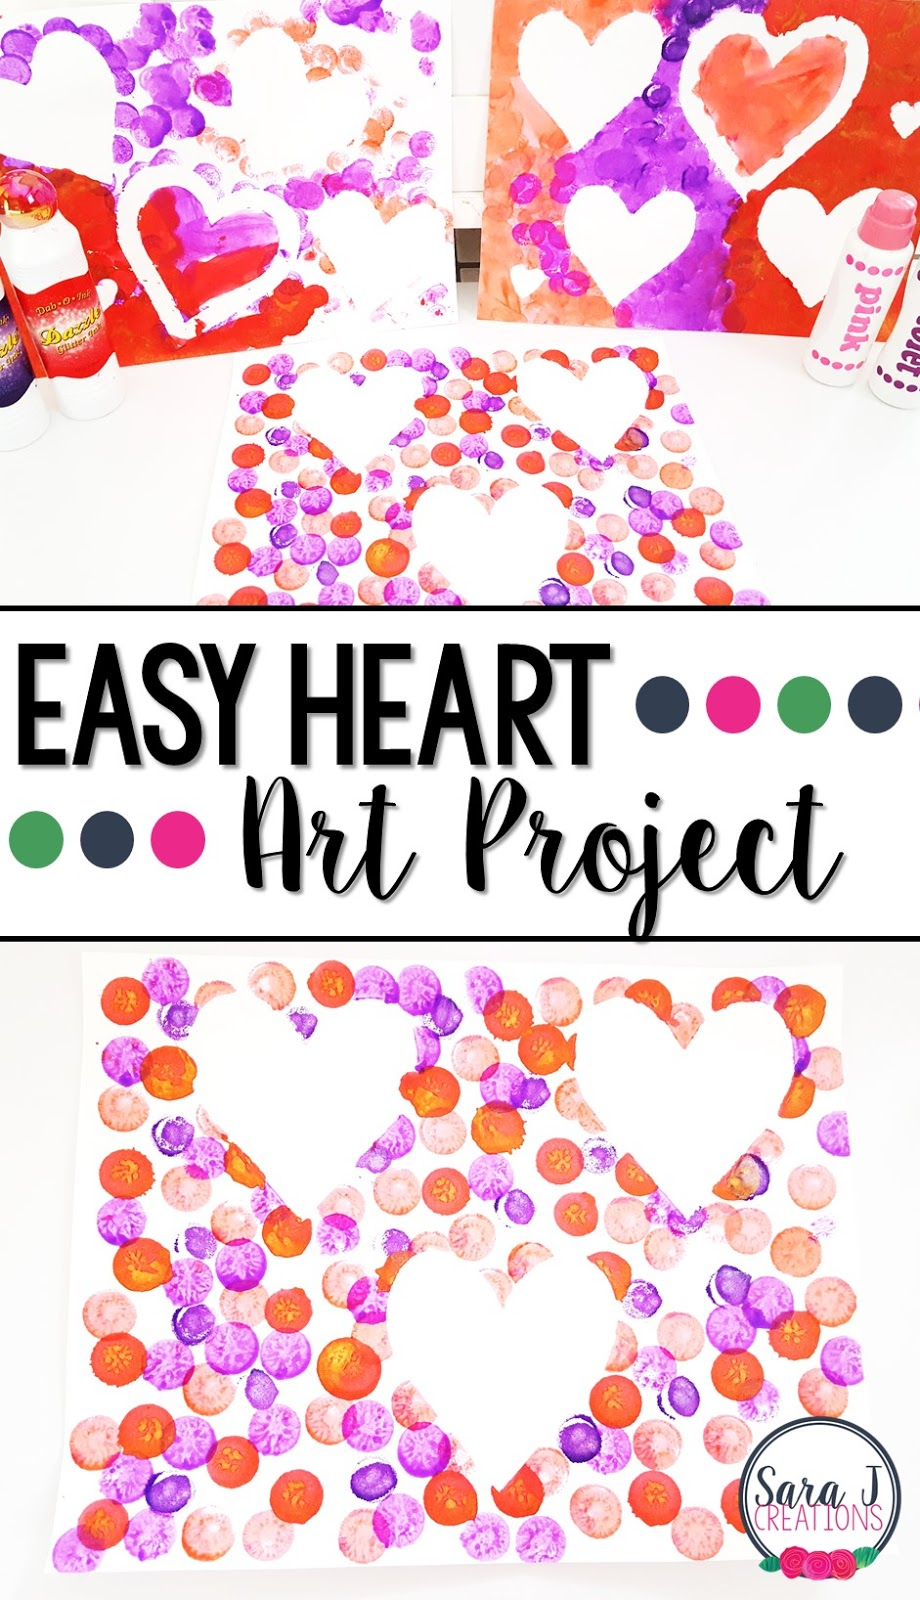 This is an idea for a Valentine's Day heart craft for kids that is so easy yet so so cute and colorful.